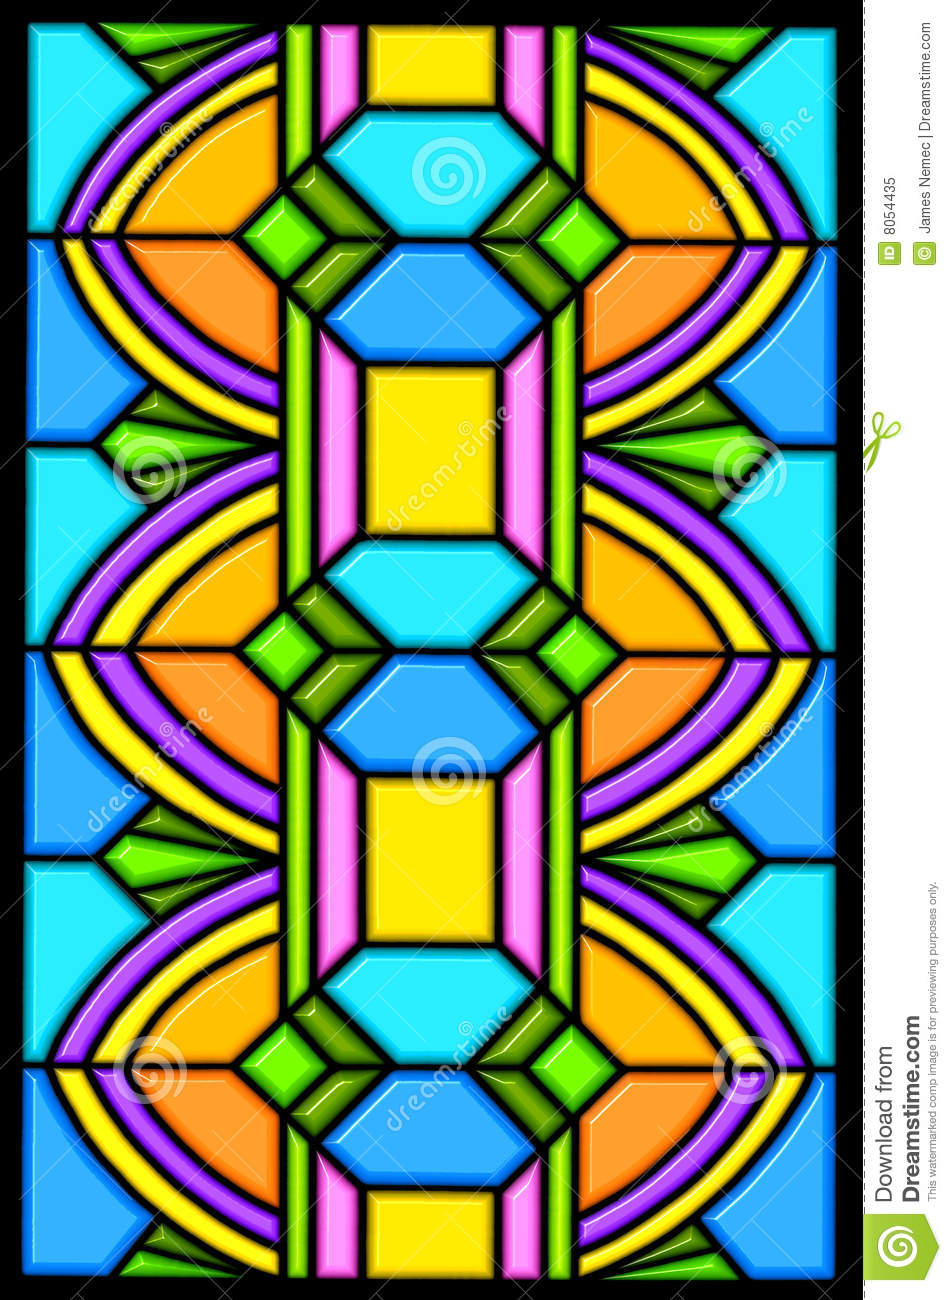 art deco stain glass design royalty free stock photo image 8054435. Black Bedroom Furniture Sets. Home Design Ideas